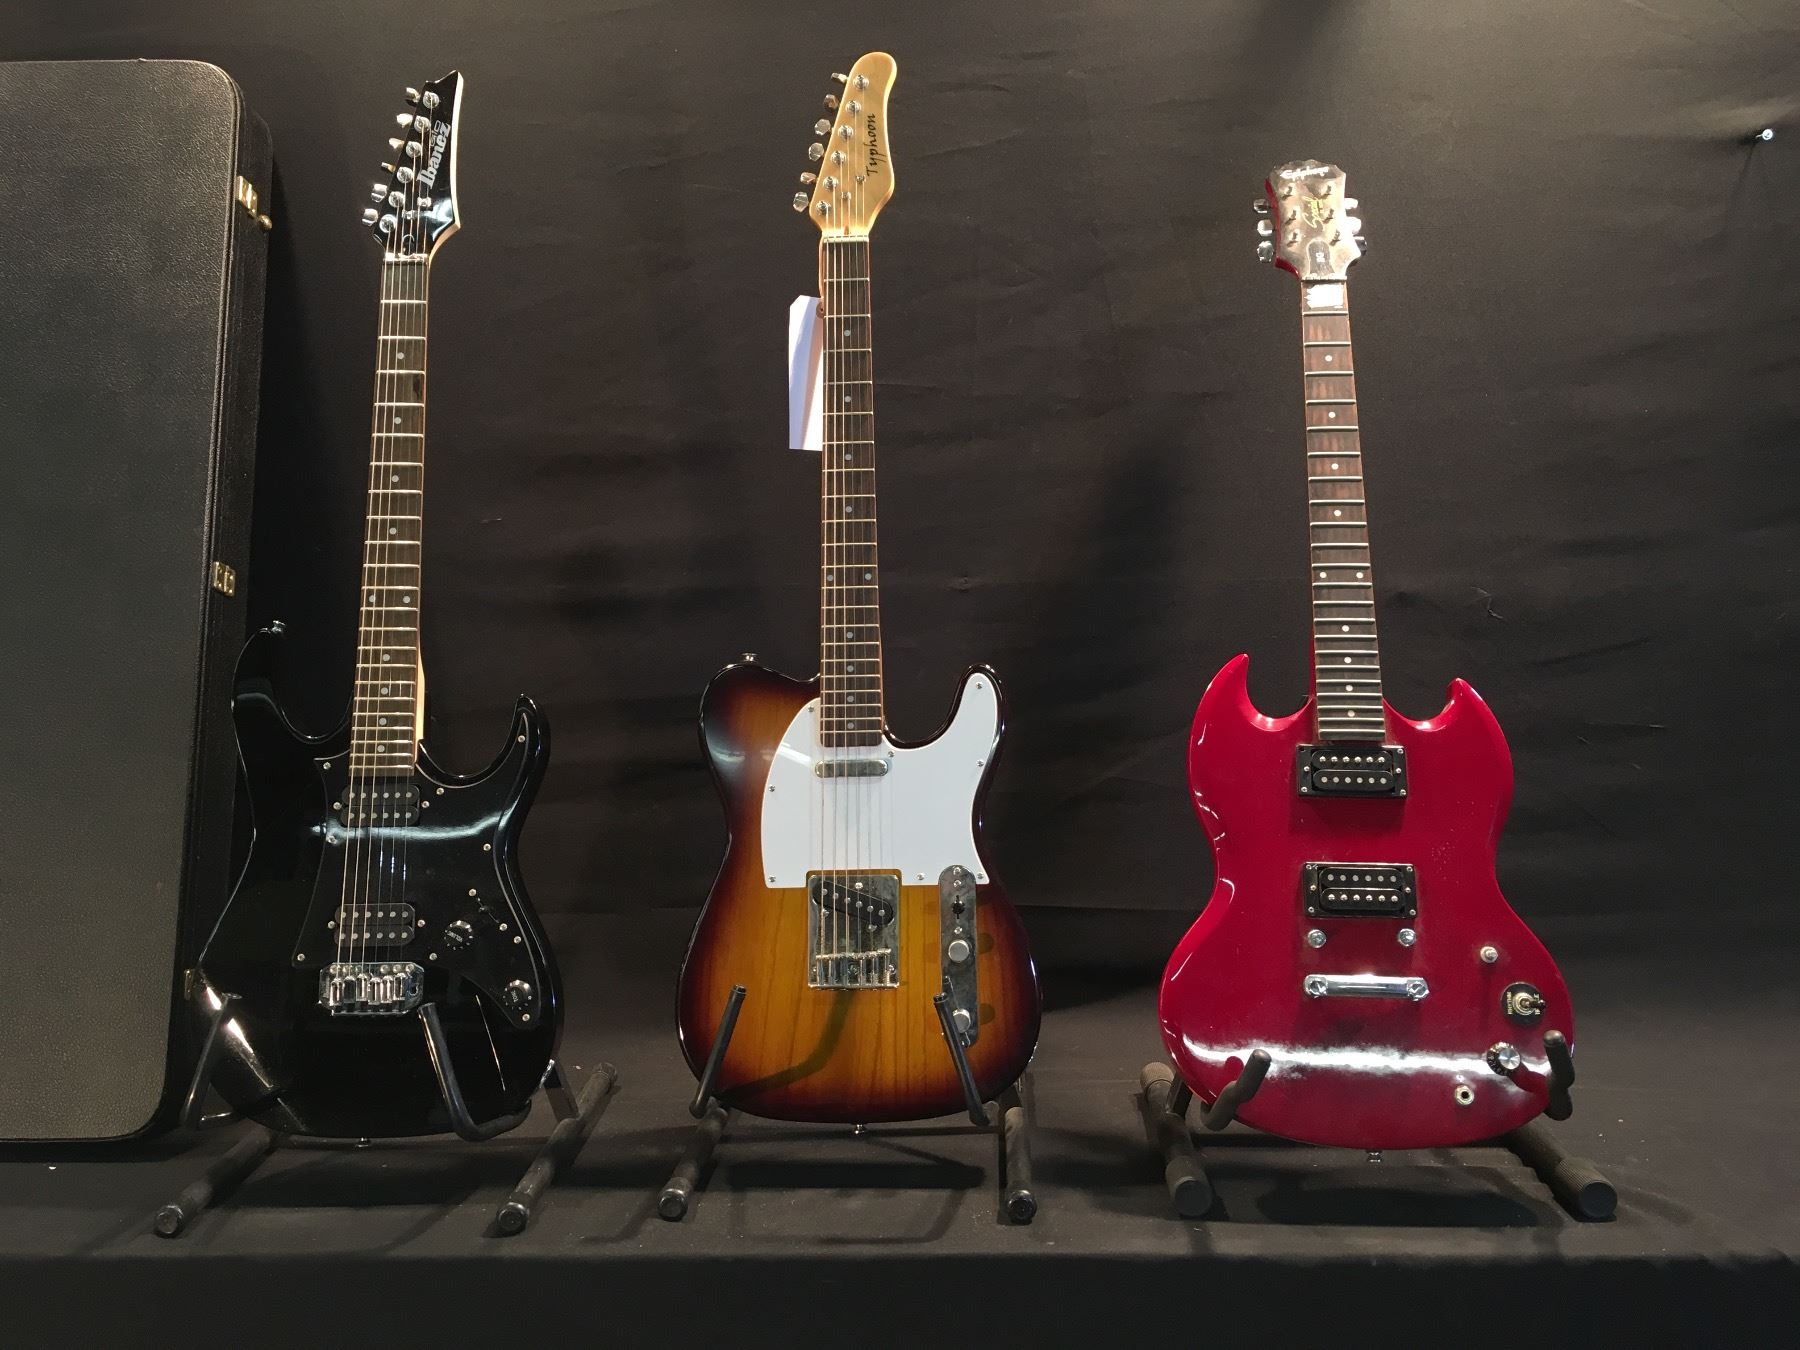 Ibanez Gio Electric Guitar Sg Great Installation Of Wiring Diagram Epiphone Special 3 Guitars Missing Bridge Typhoon Tele Style Rh Liveauctionworld Com Red Gax70